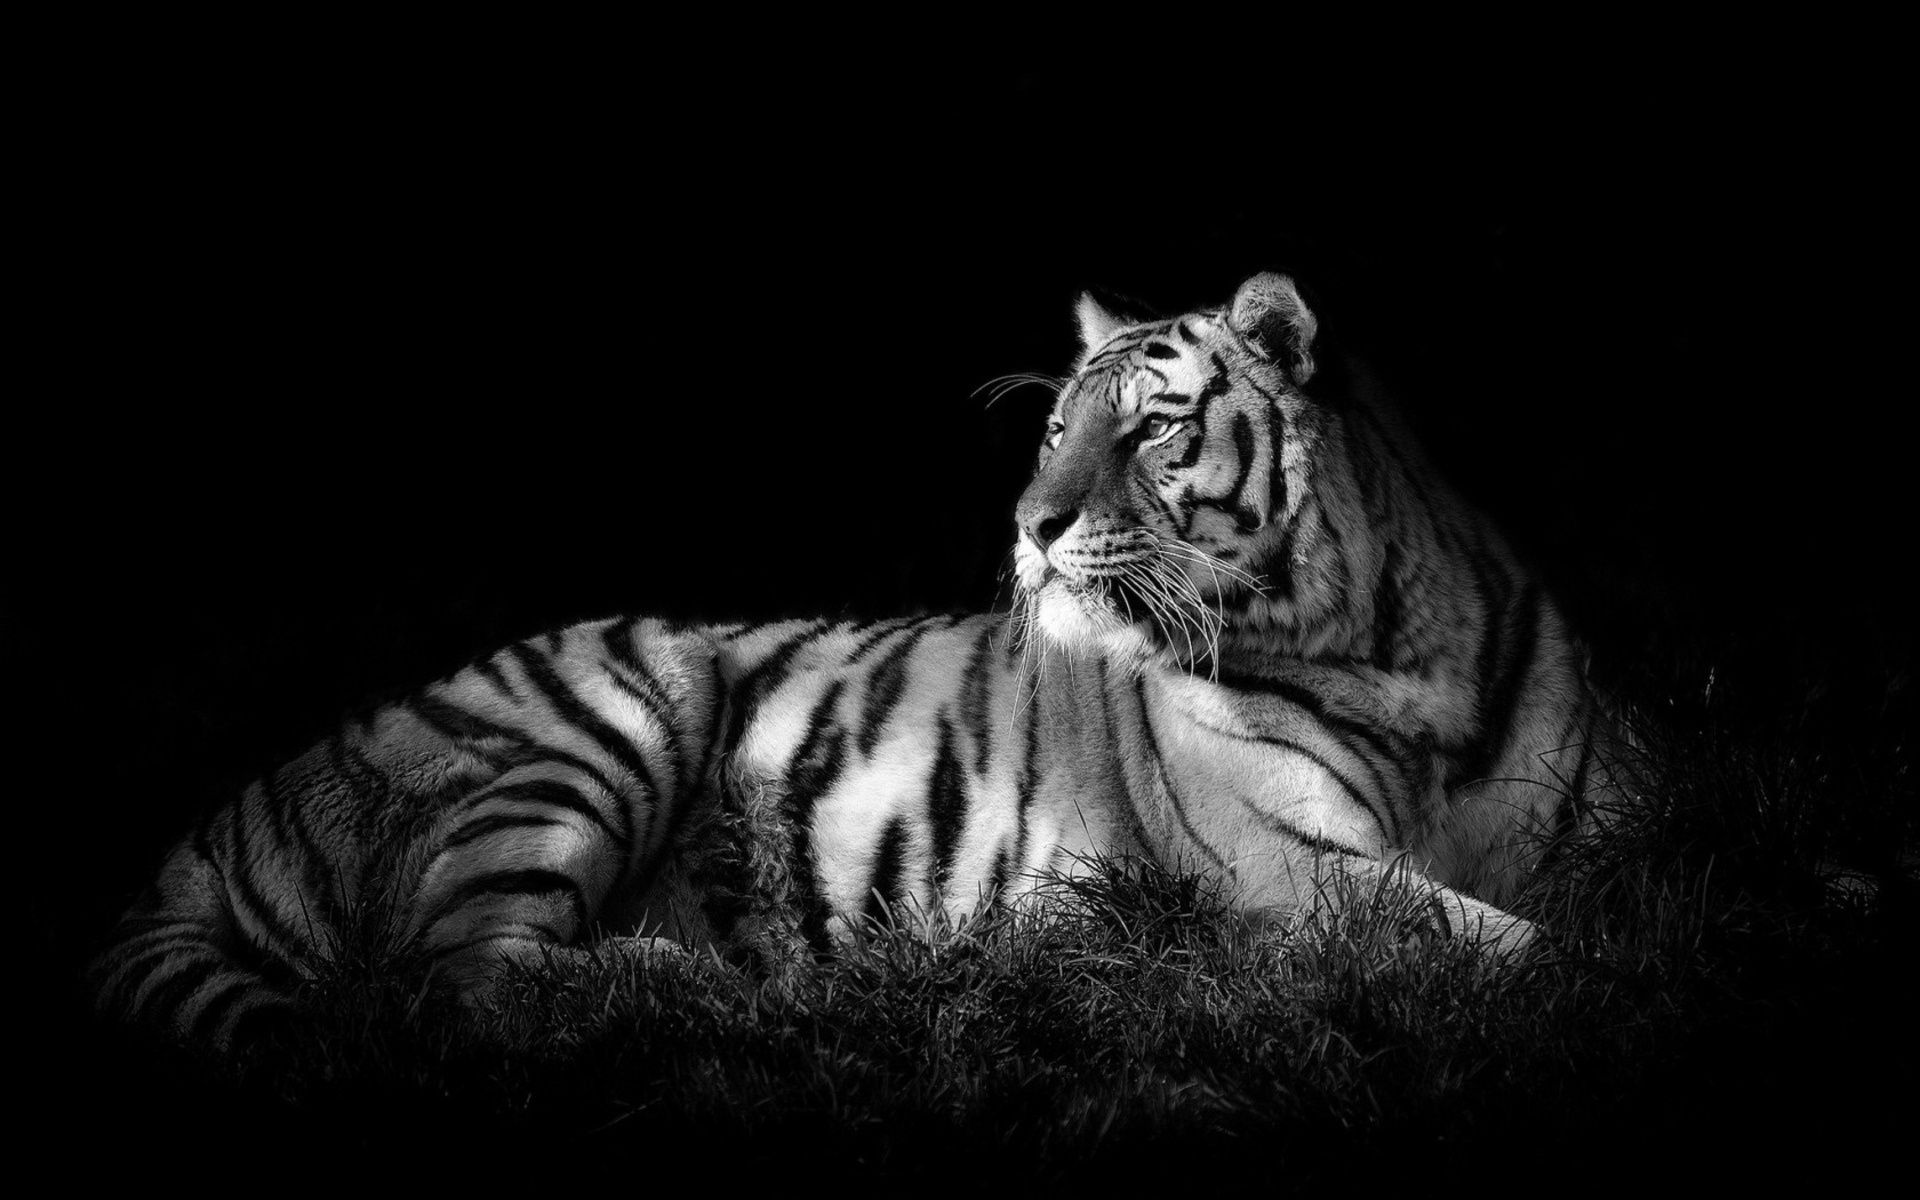 Royal bengal tiger is a great wallpaper for your computer desktop and - Tiger Black White Cats Wallpaper Id 1683309 Desktop Nexus Animals